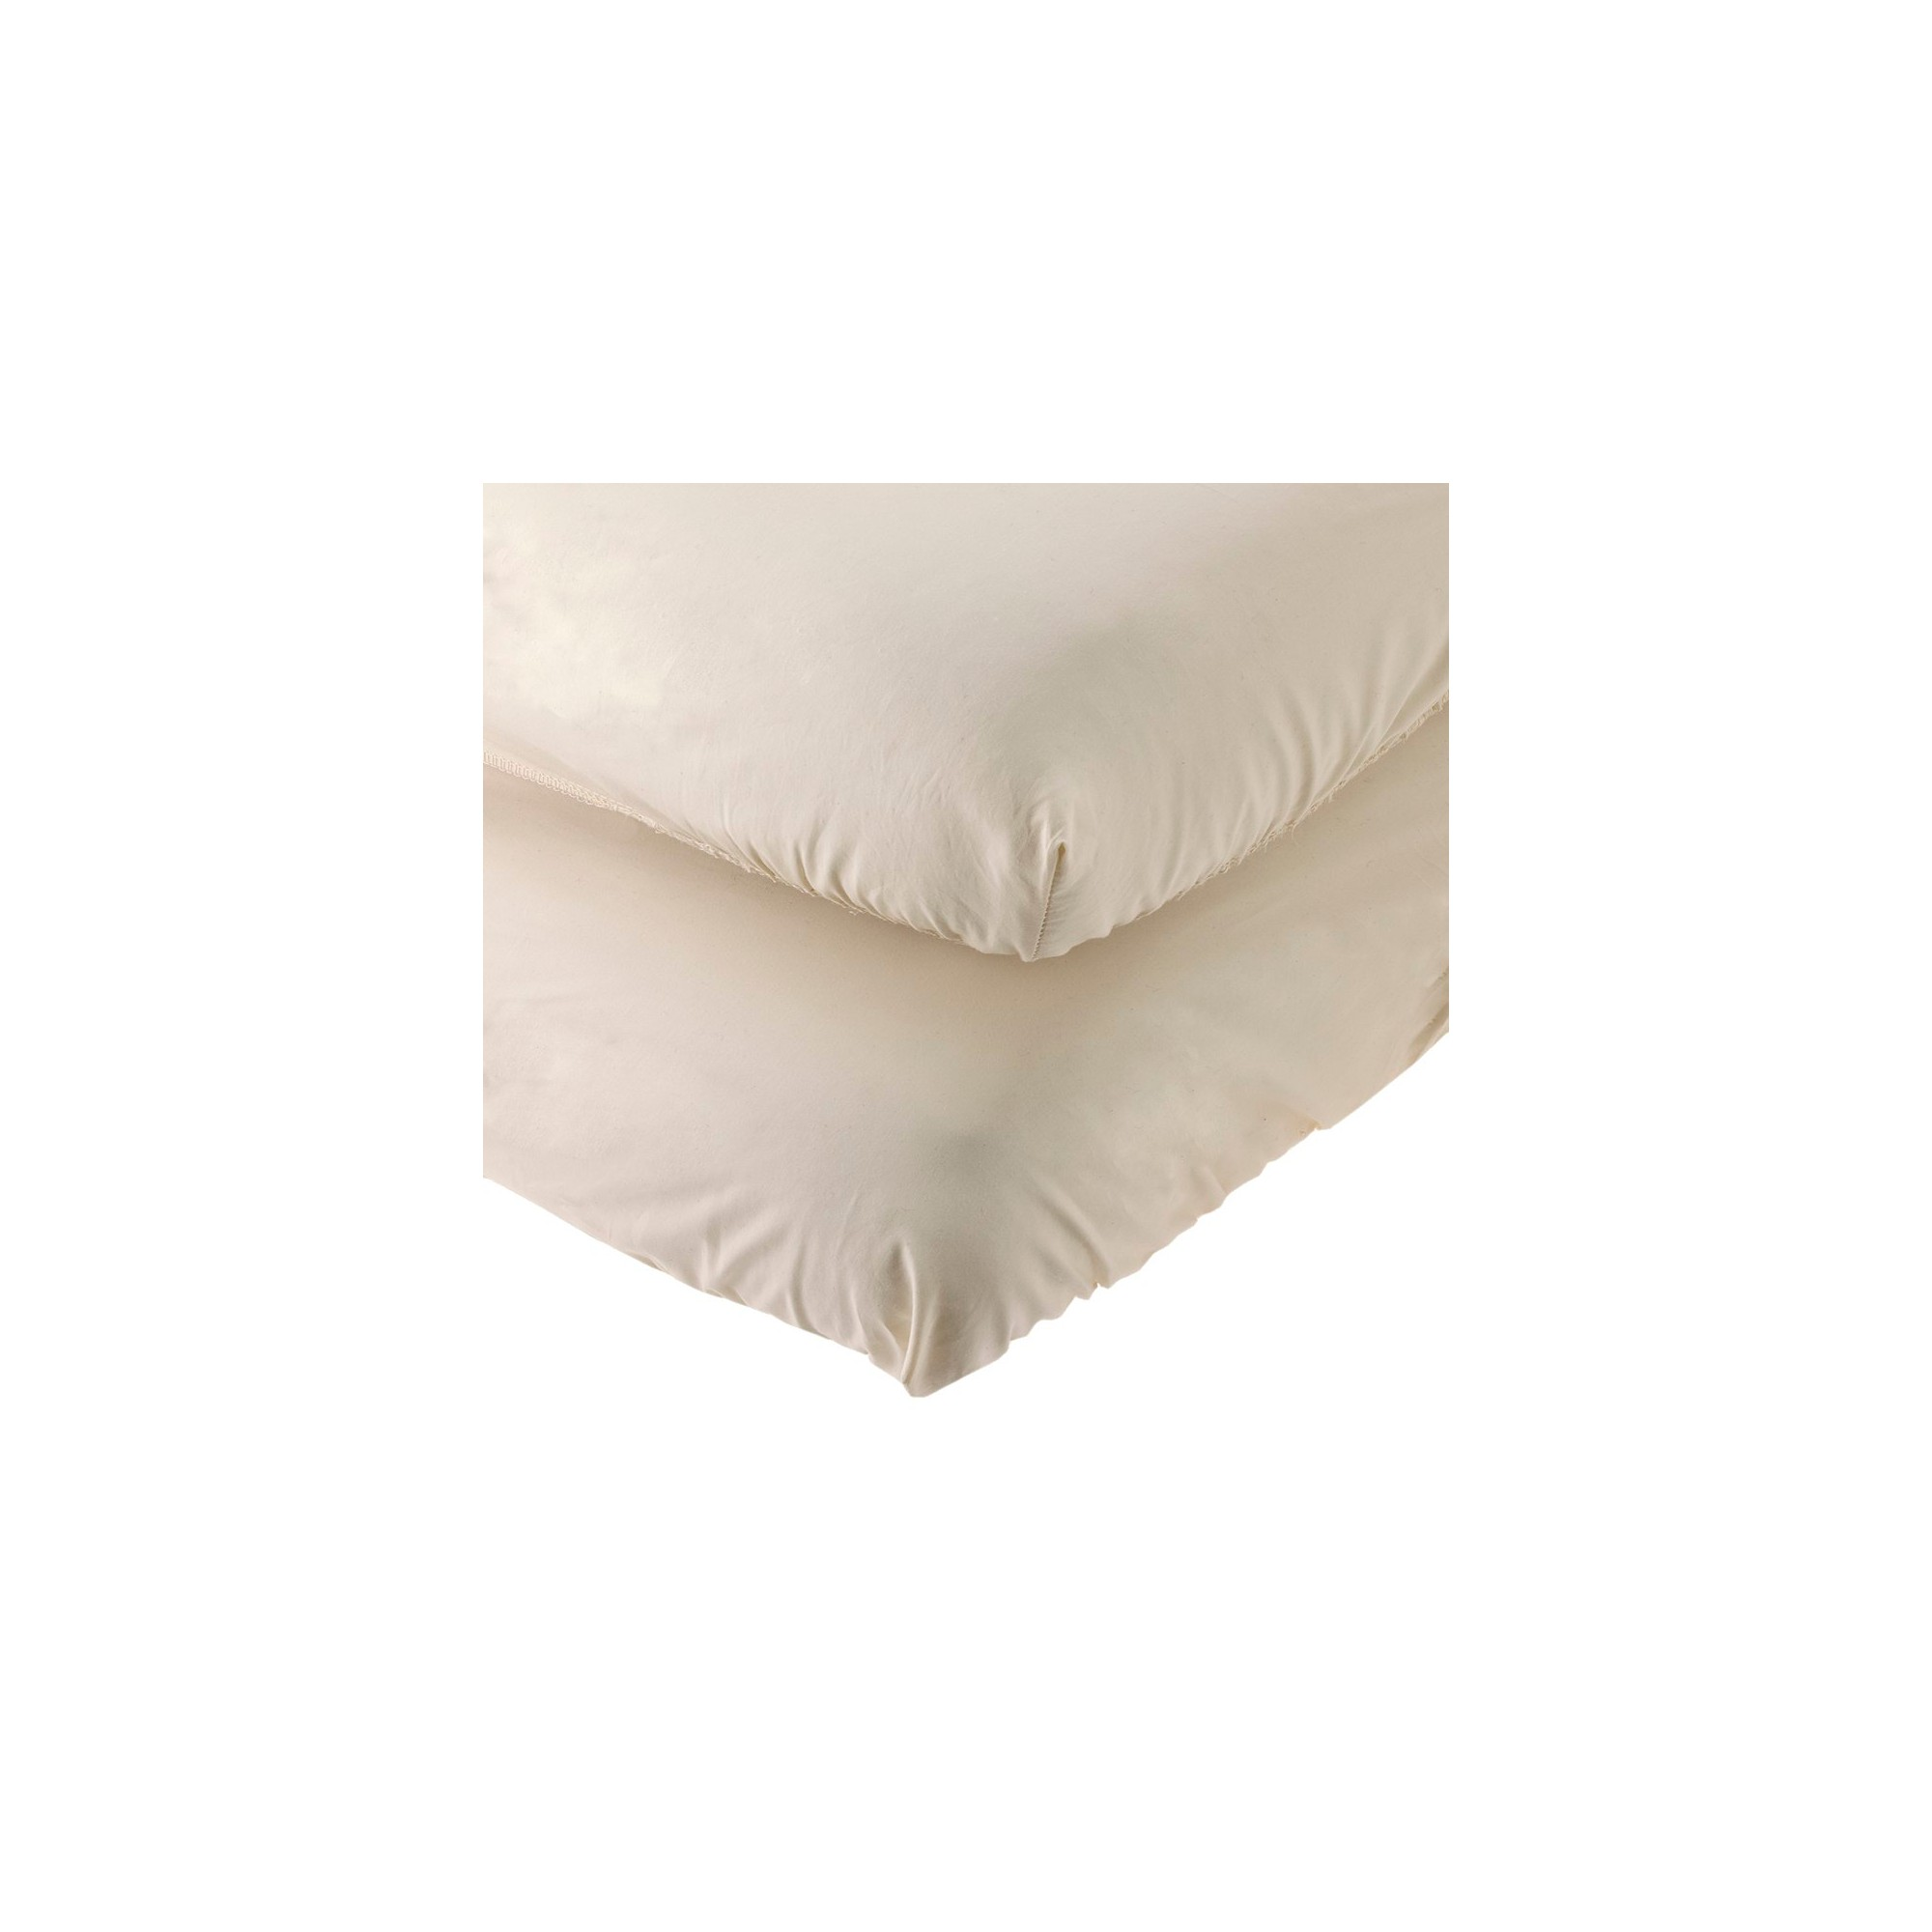 Royal Heritage 2pk Organic Cotton Changing Pad Covers